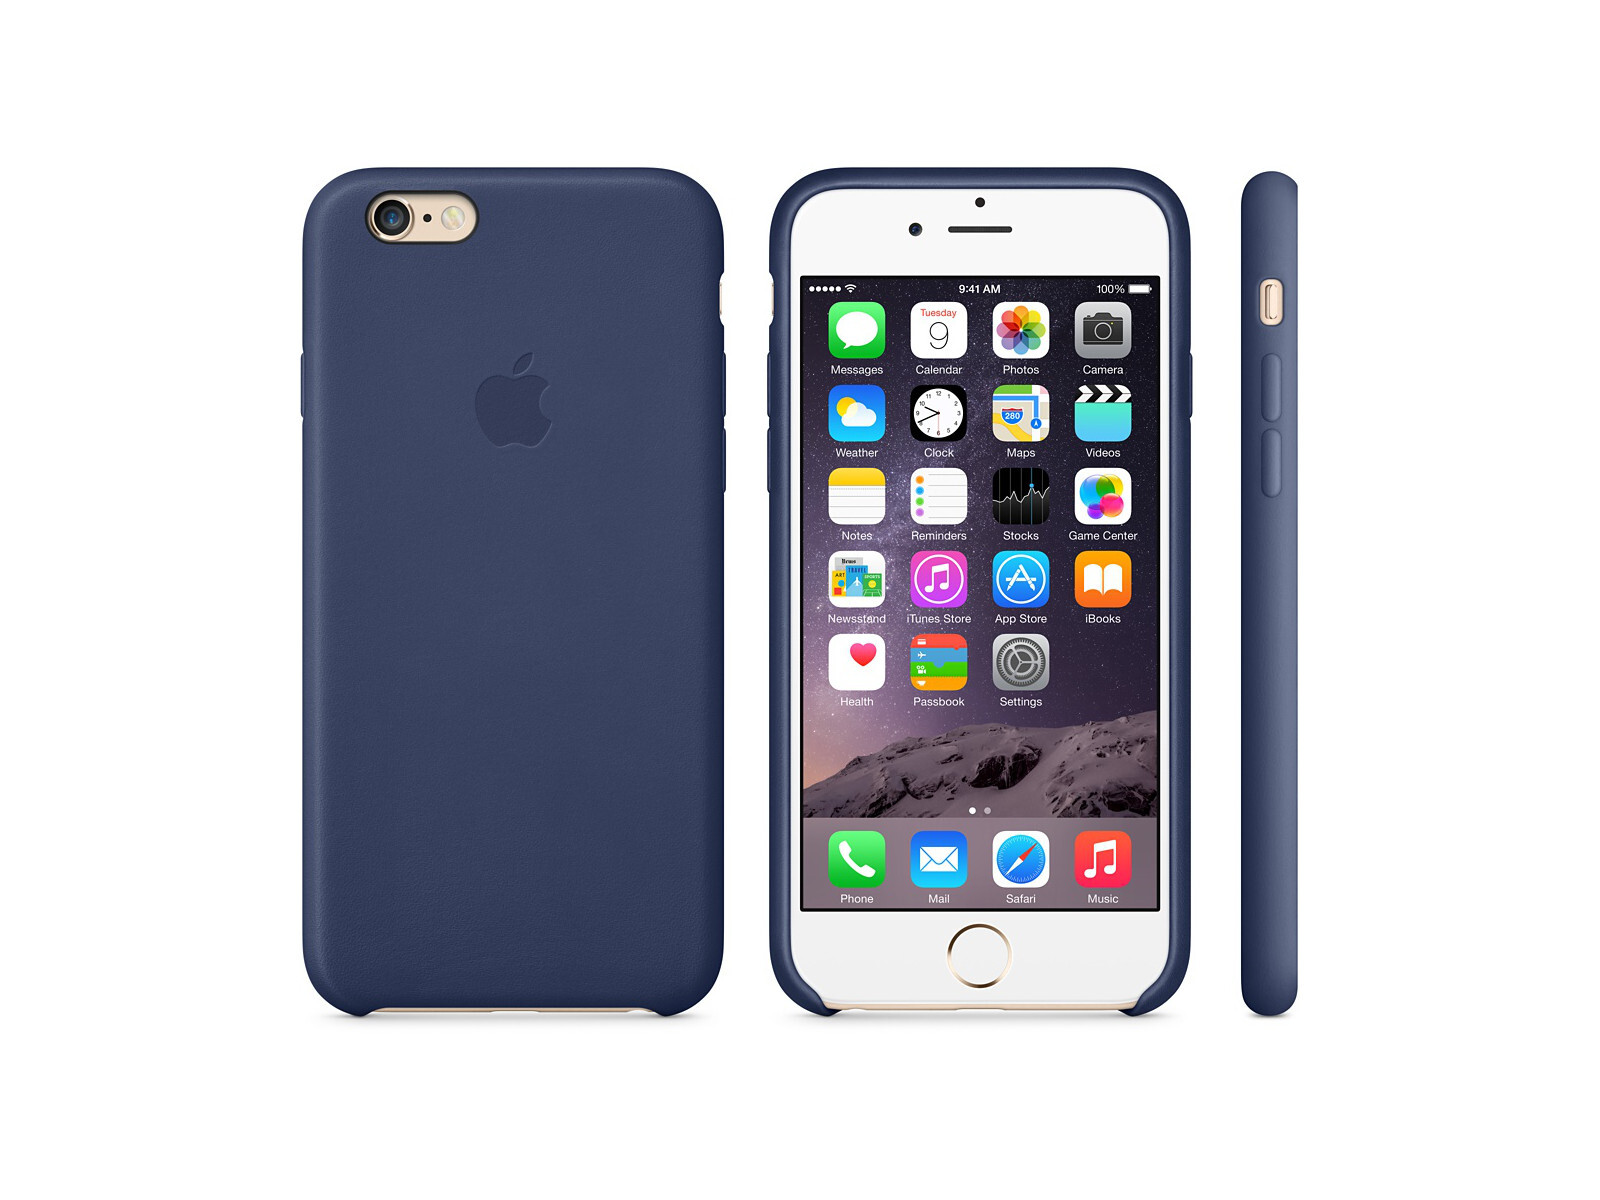 aa21f09ae51130 Best Apple iPhone 6 cases and covers - PhoneArena